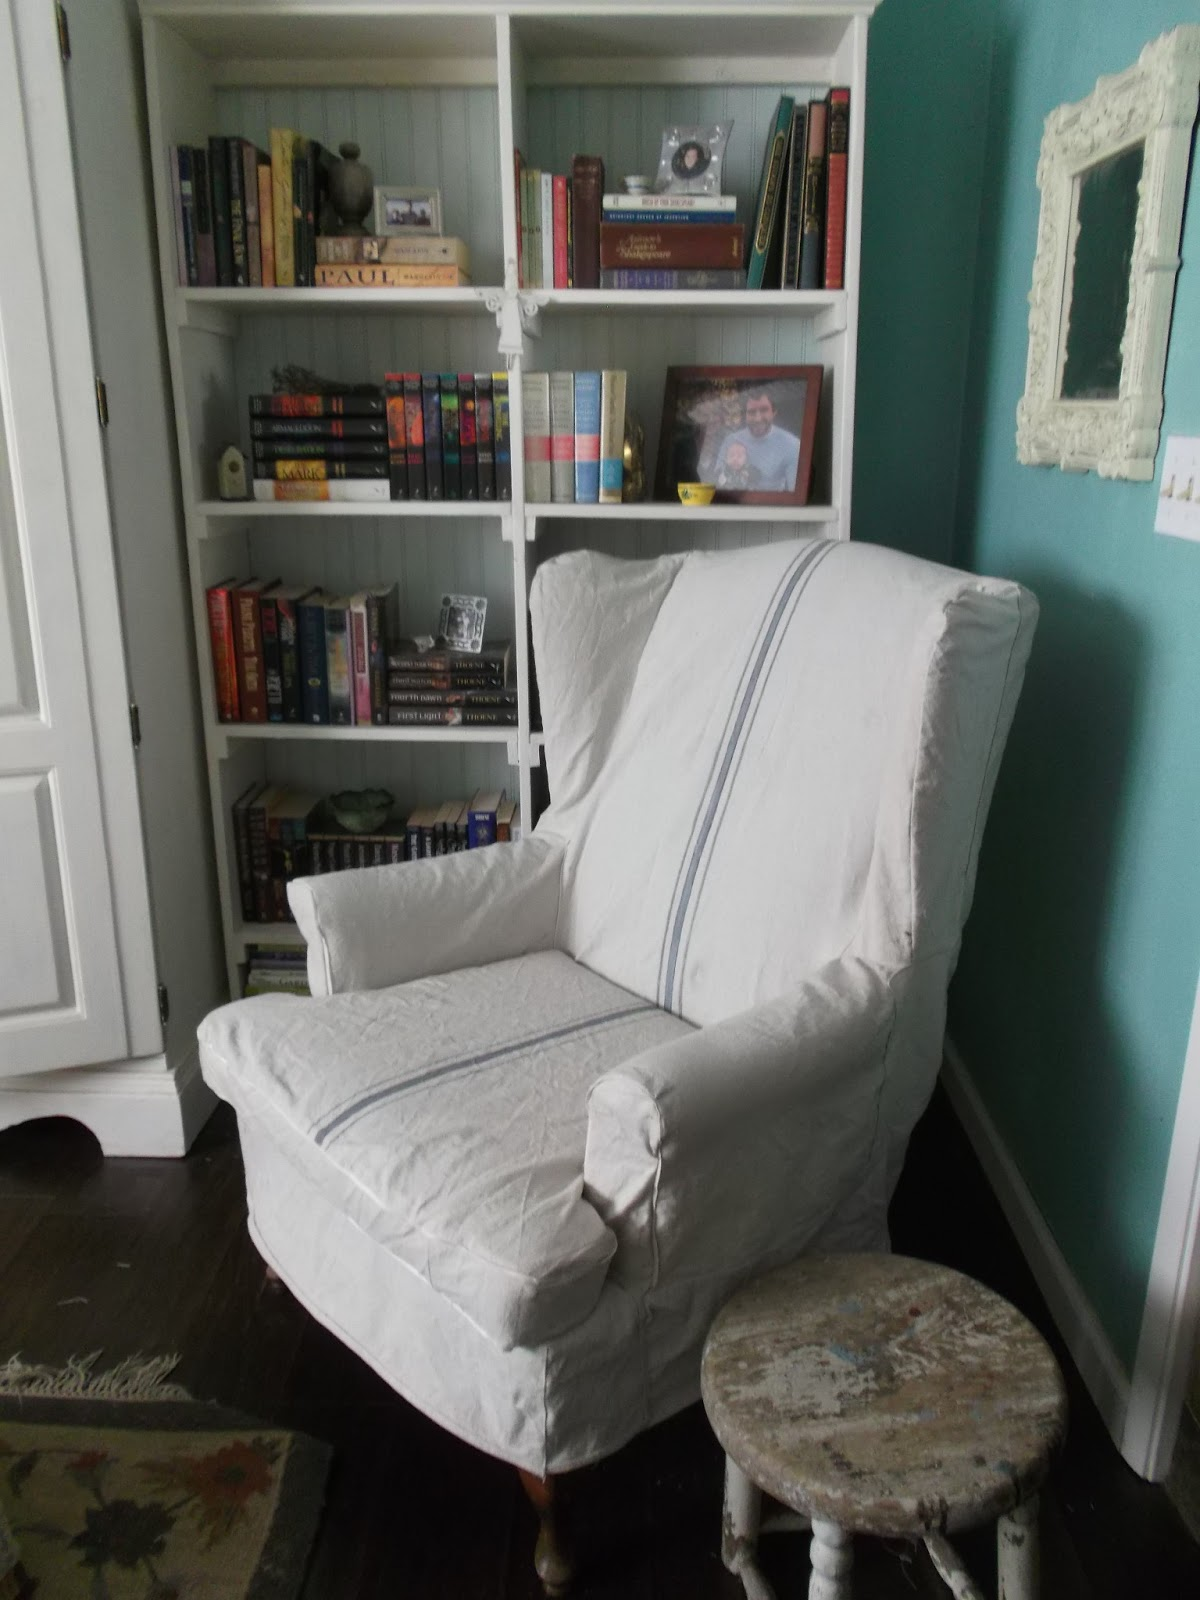 Single Sofa With Wingback Chair Slipcover In White On Wooden Floor Matched  With Green Wall Plus